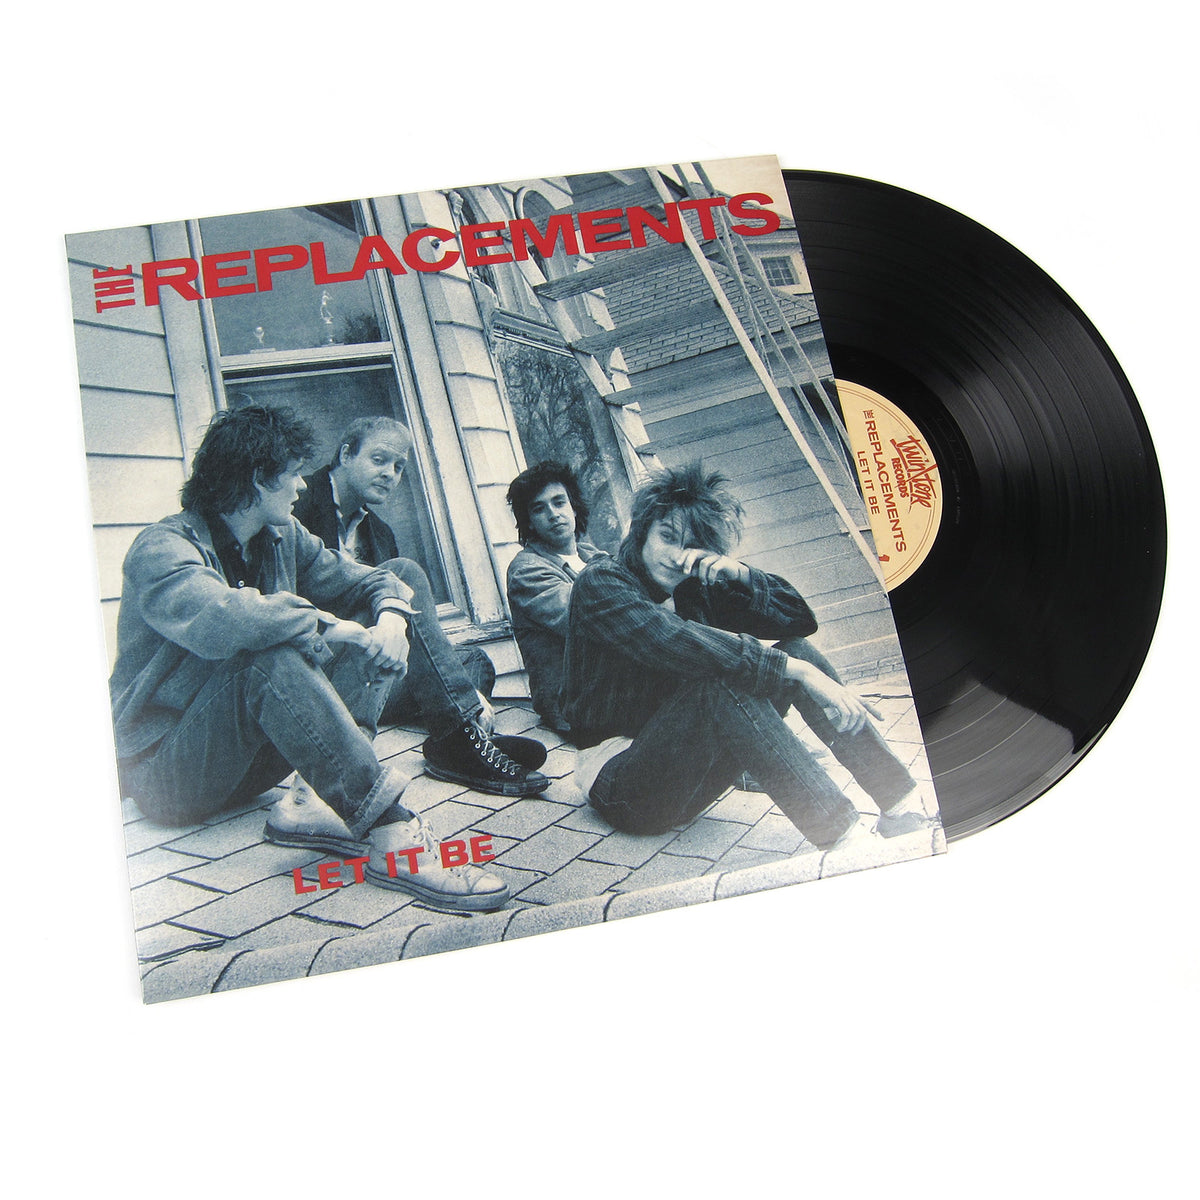 The Replacements: Let It Be Vinyl LP